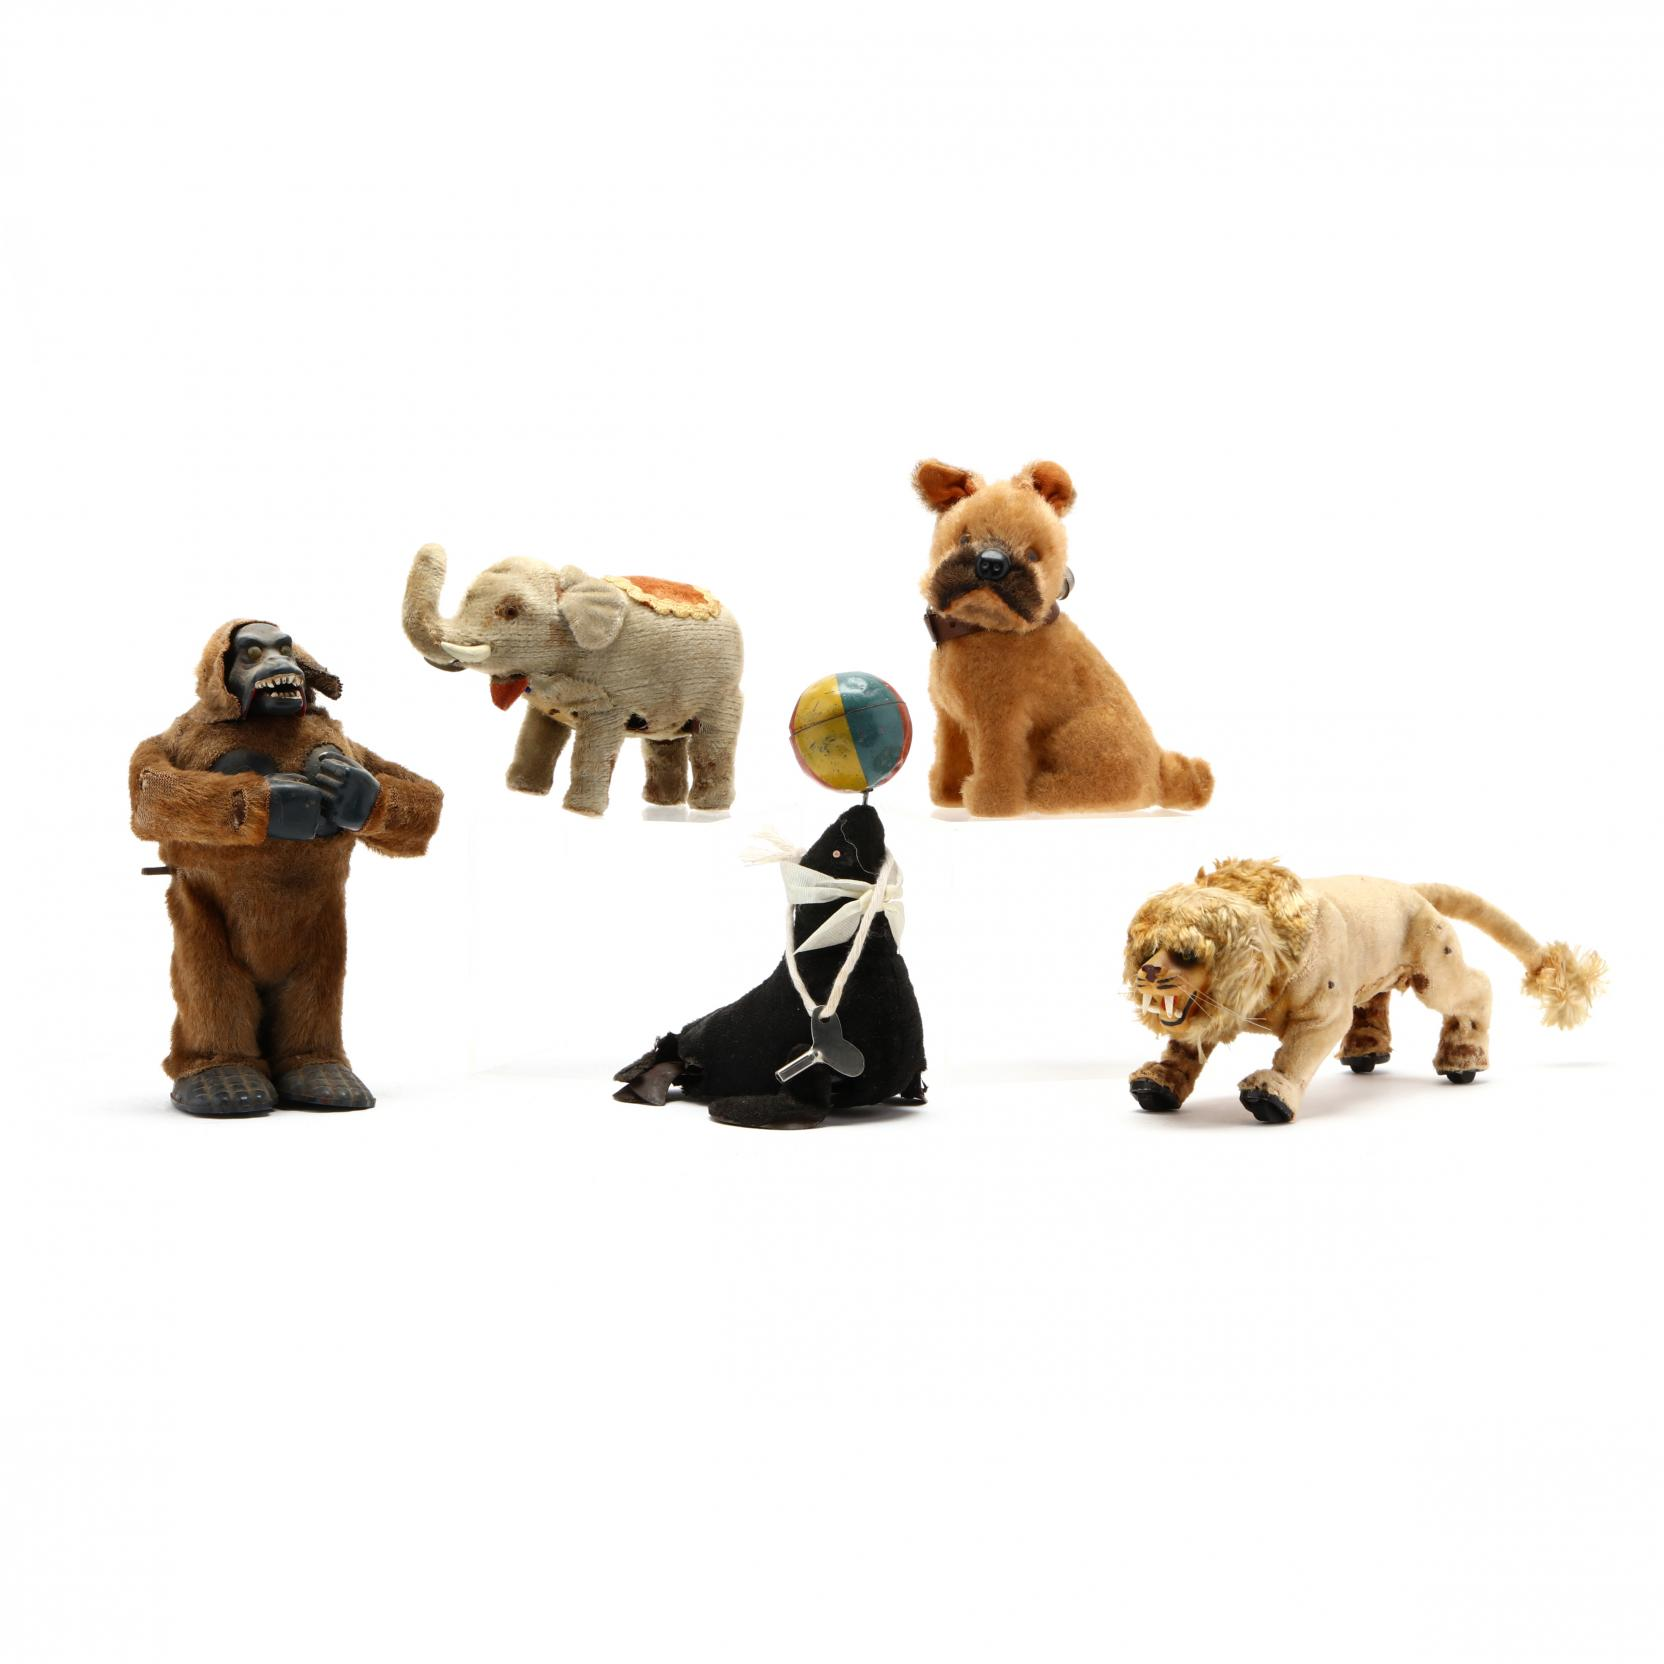 a-group-of-vintage-mohair-wind-up-animals